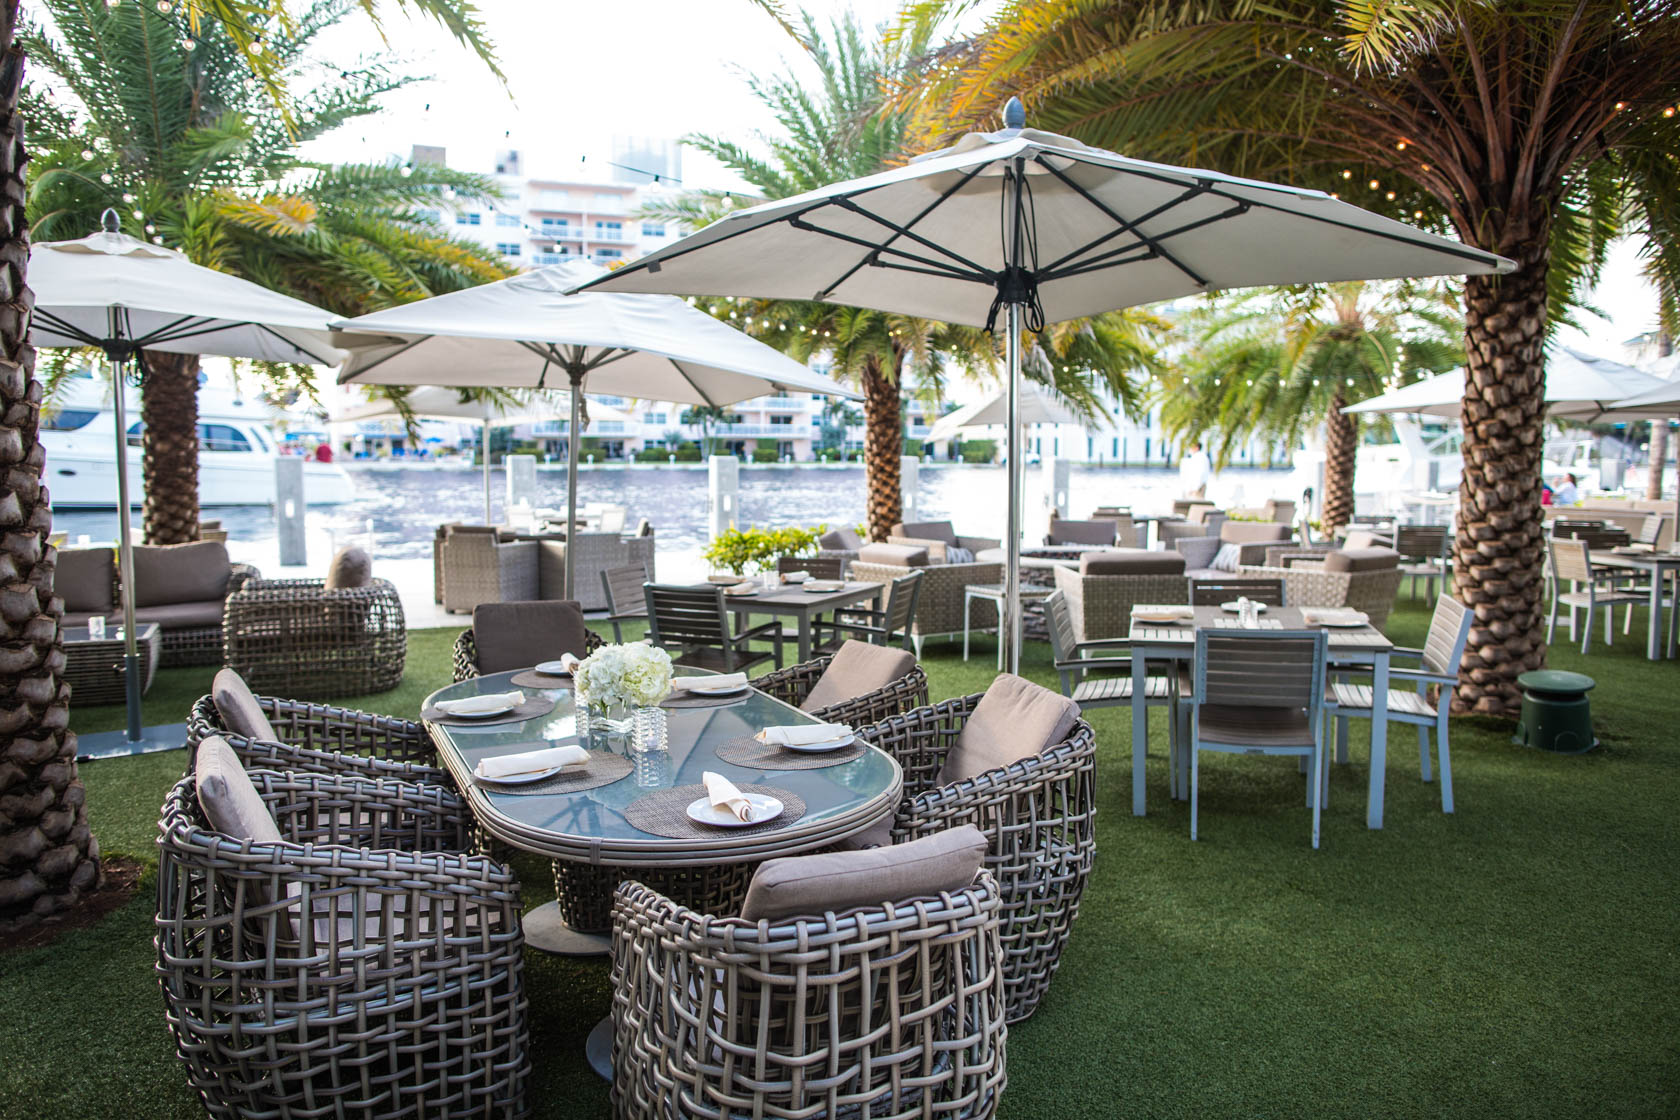 Waterfront Restaurant On Intercoastal In Fort Lauderdale